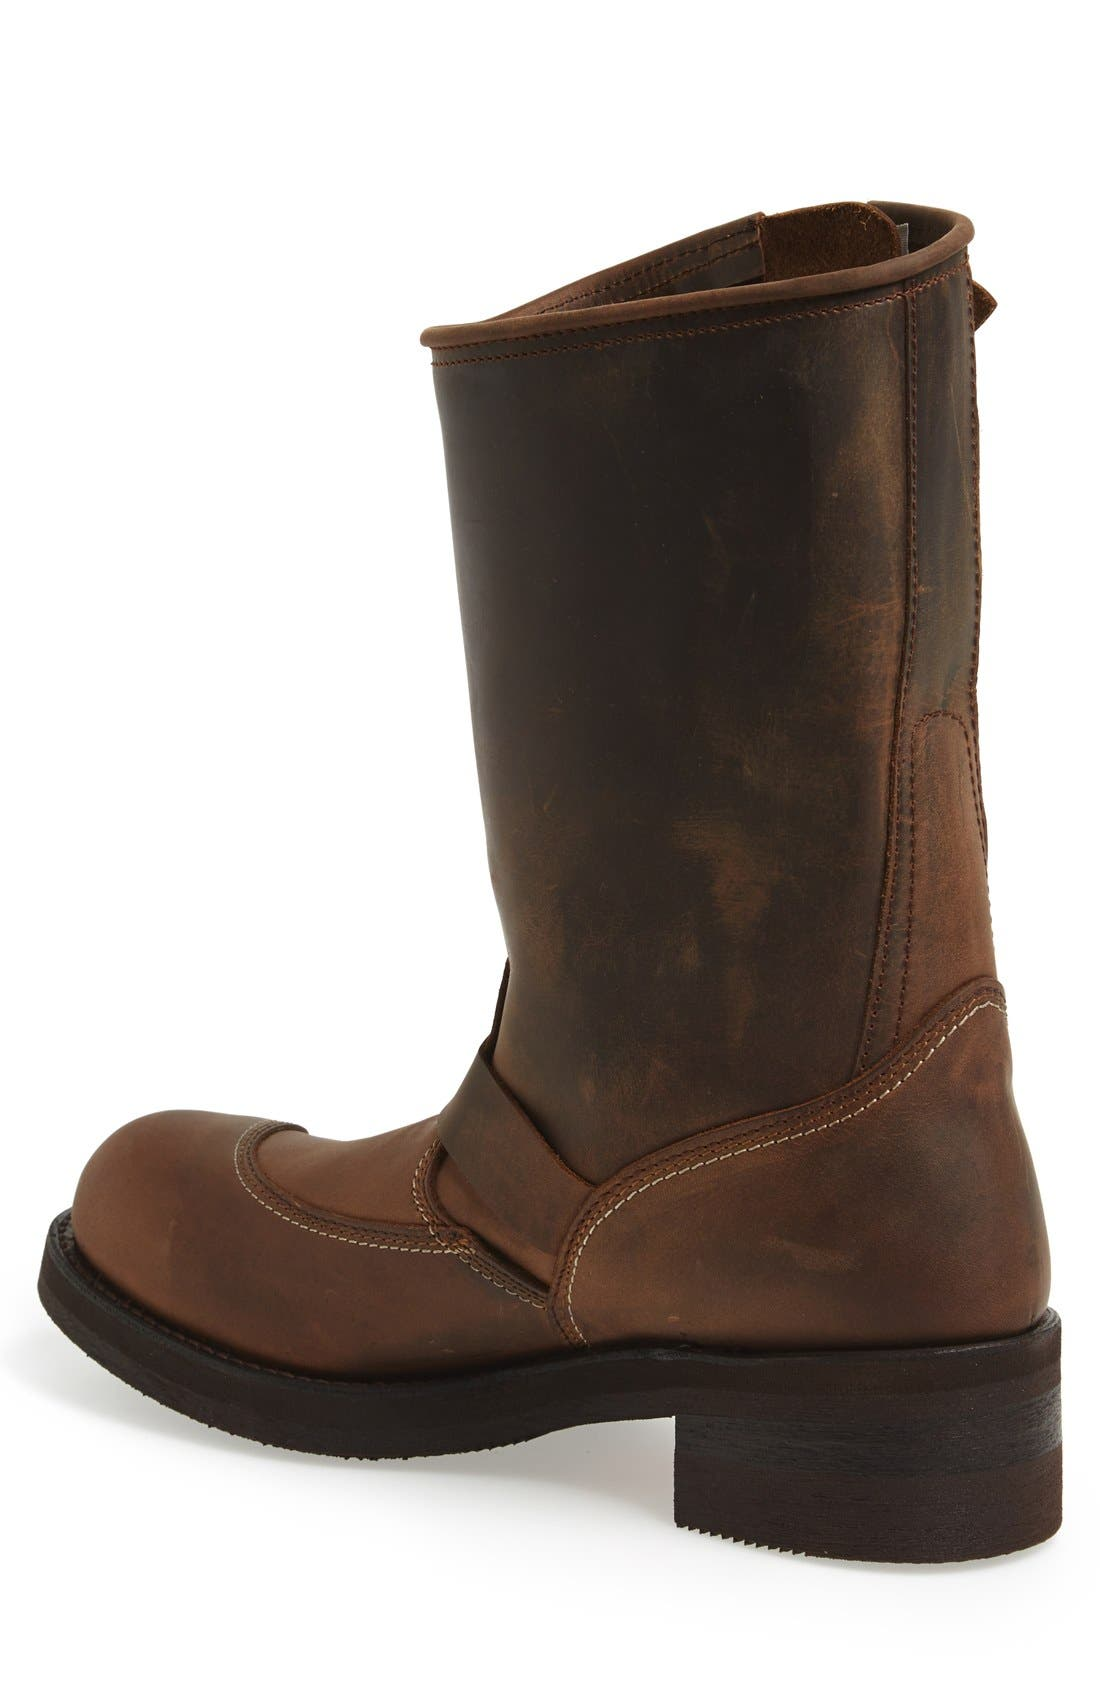 'Rider' Motorcycle Boot,                             Alternate thumbnail 2, color,                             243